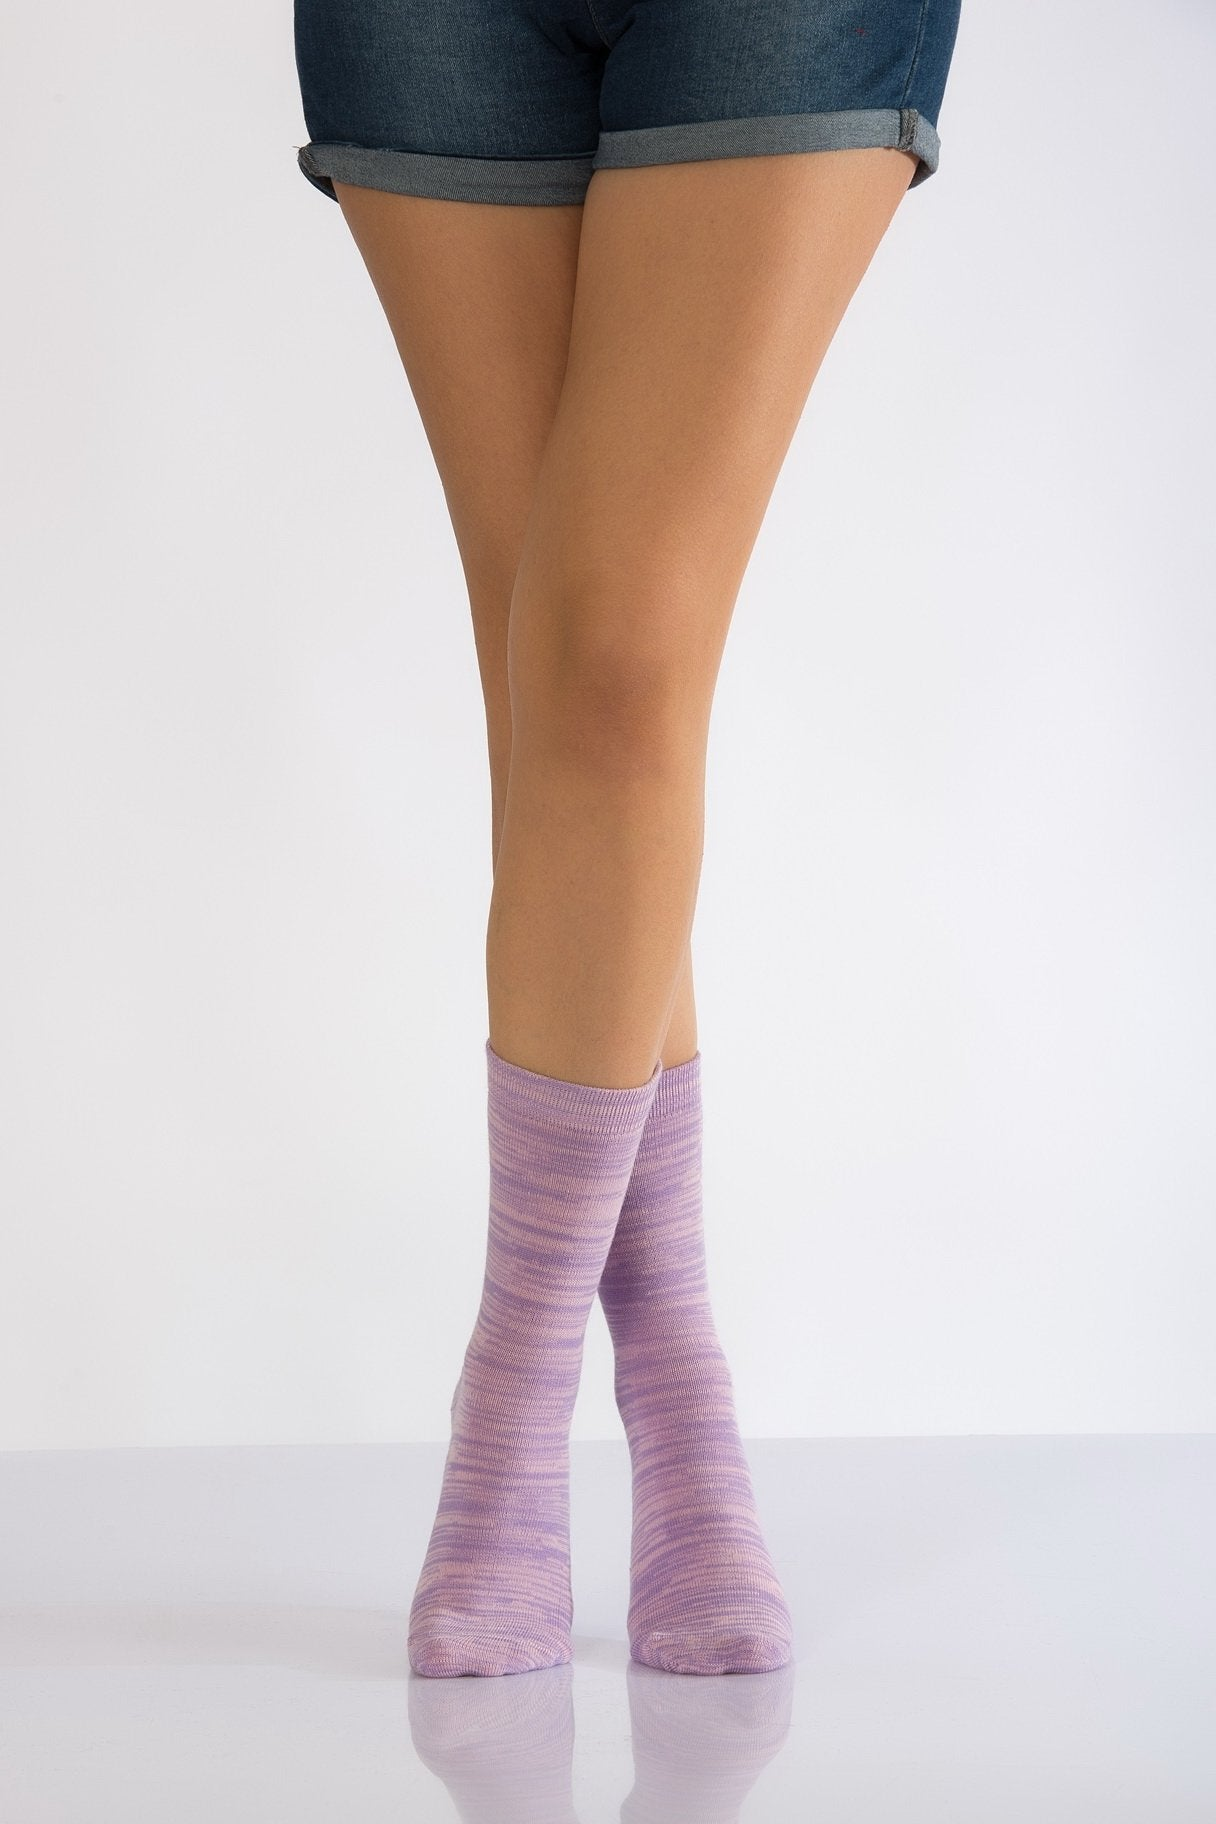 Women's Degrade Pattern Lilac Thermal Socket Socks- 3 Pairs